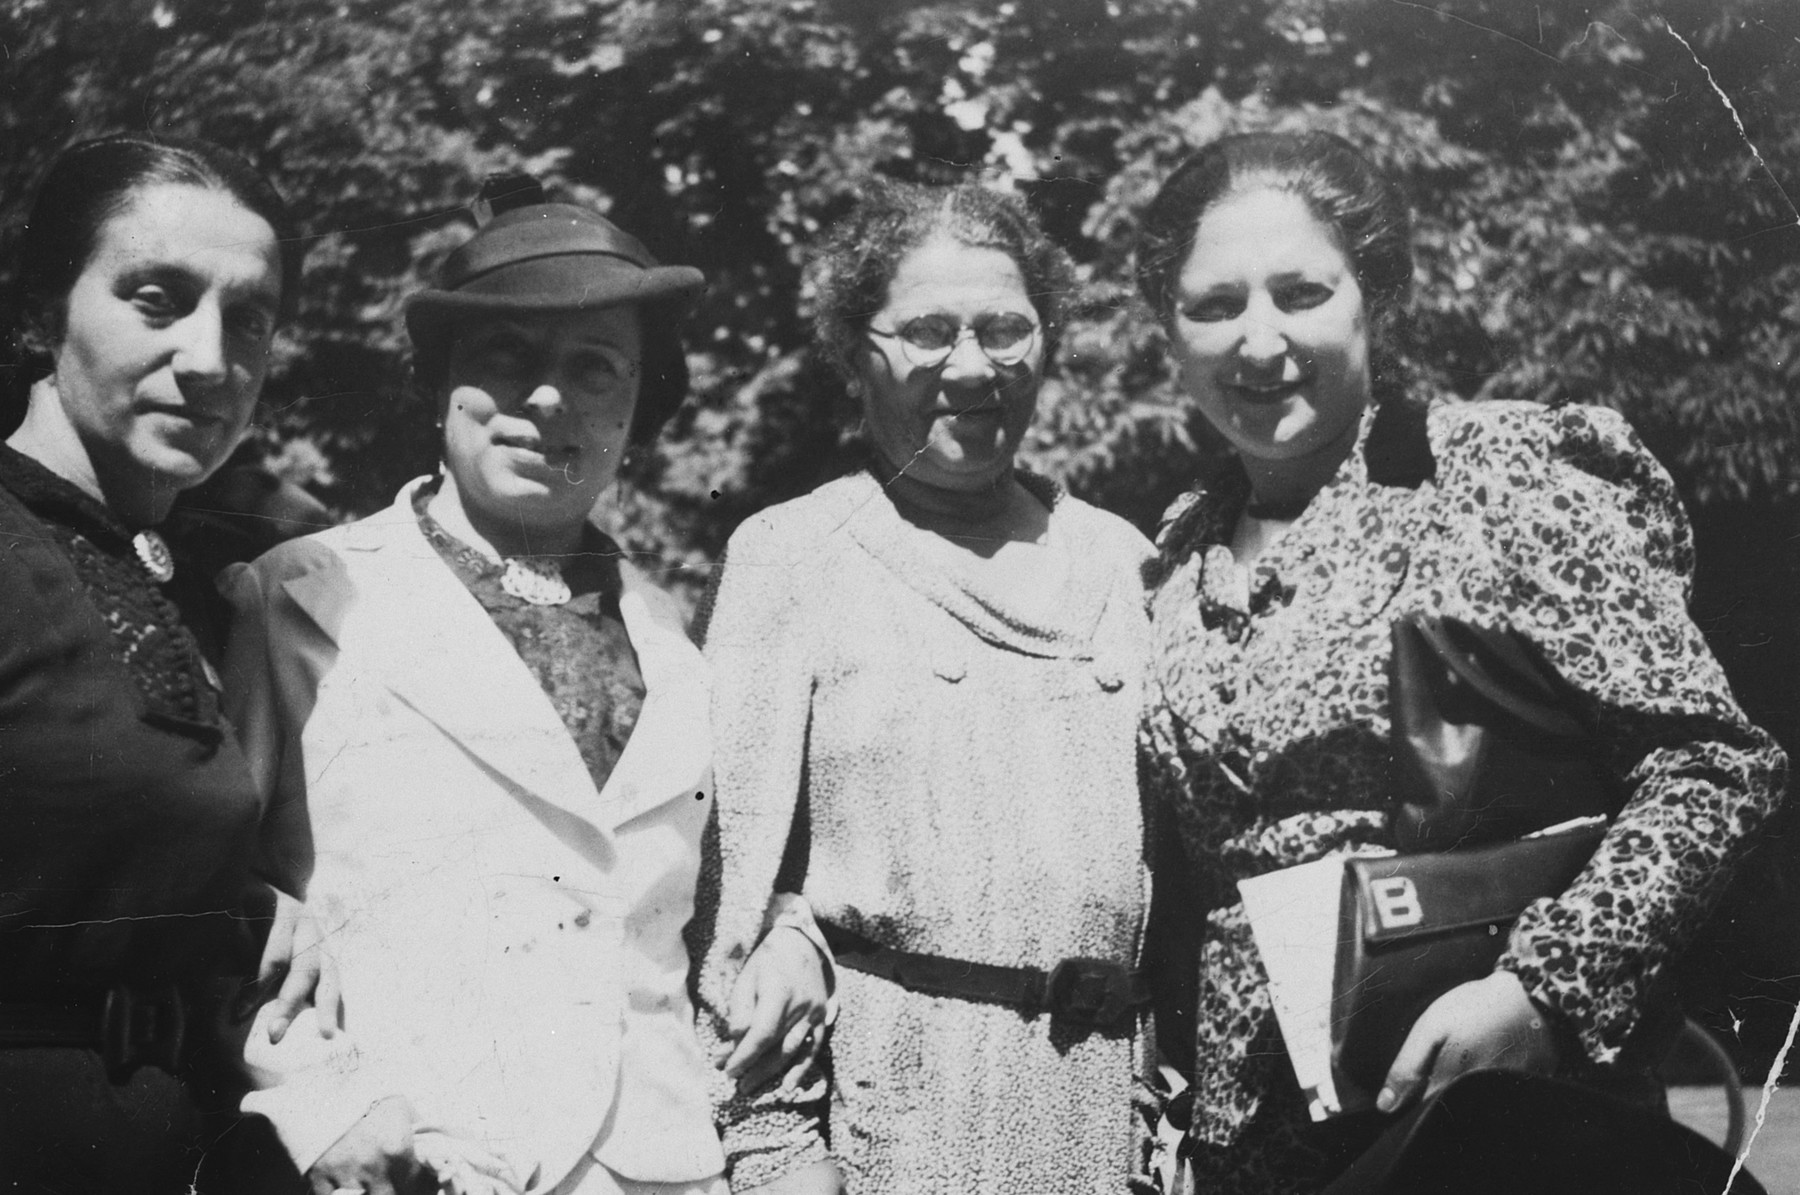 Portrait of four Slovak Jewish women.  Beatte Hartvig is on the far left.  Next to her is Gisi Fleischmann.